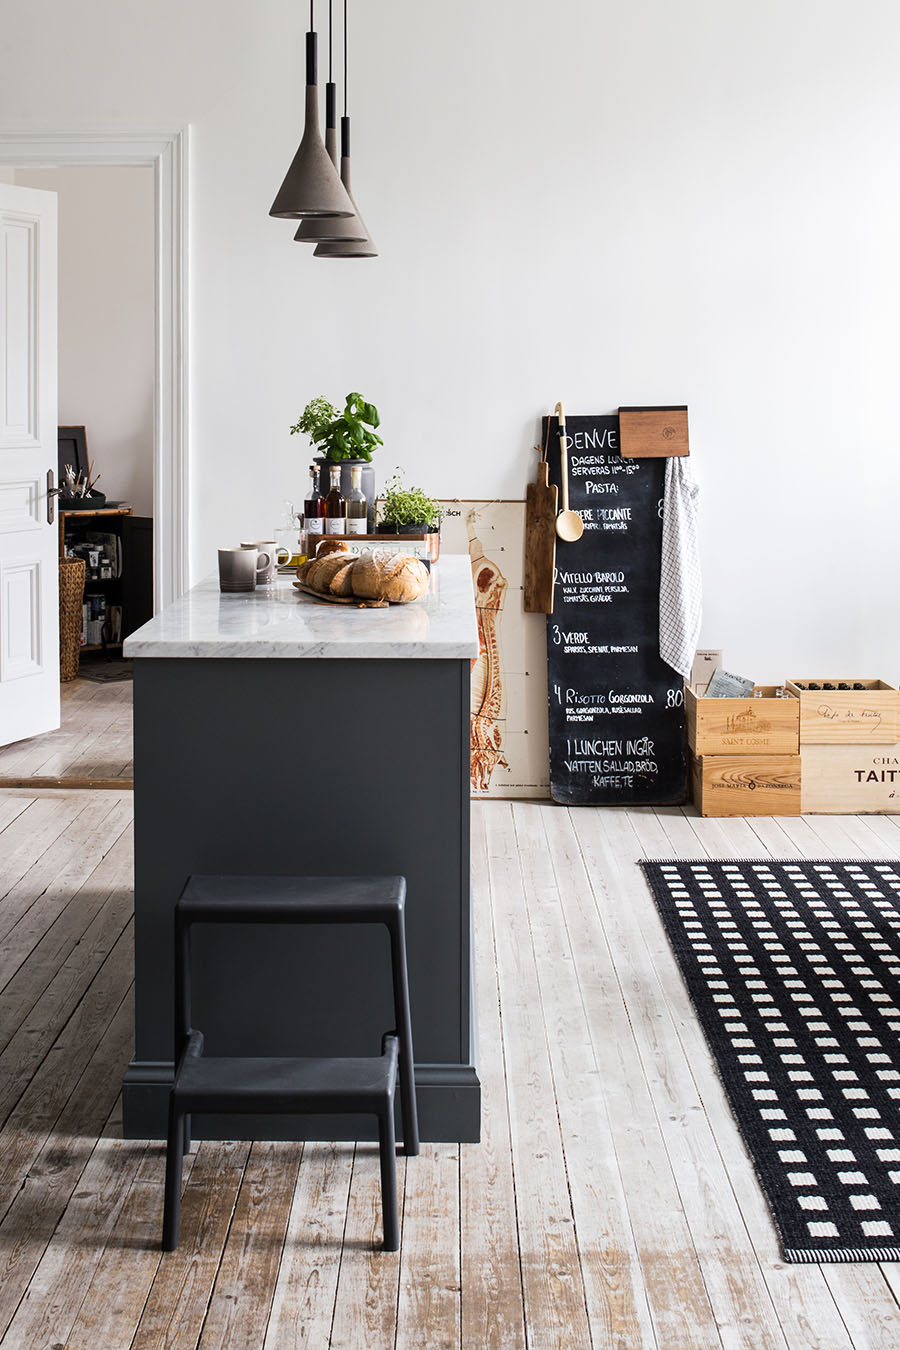 Dark gray kitchen, concrete lamp, black and white carpet, wooden boxes